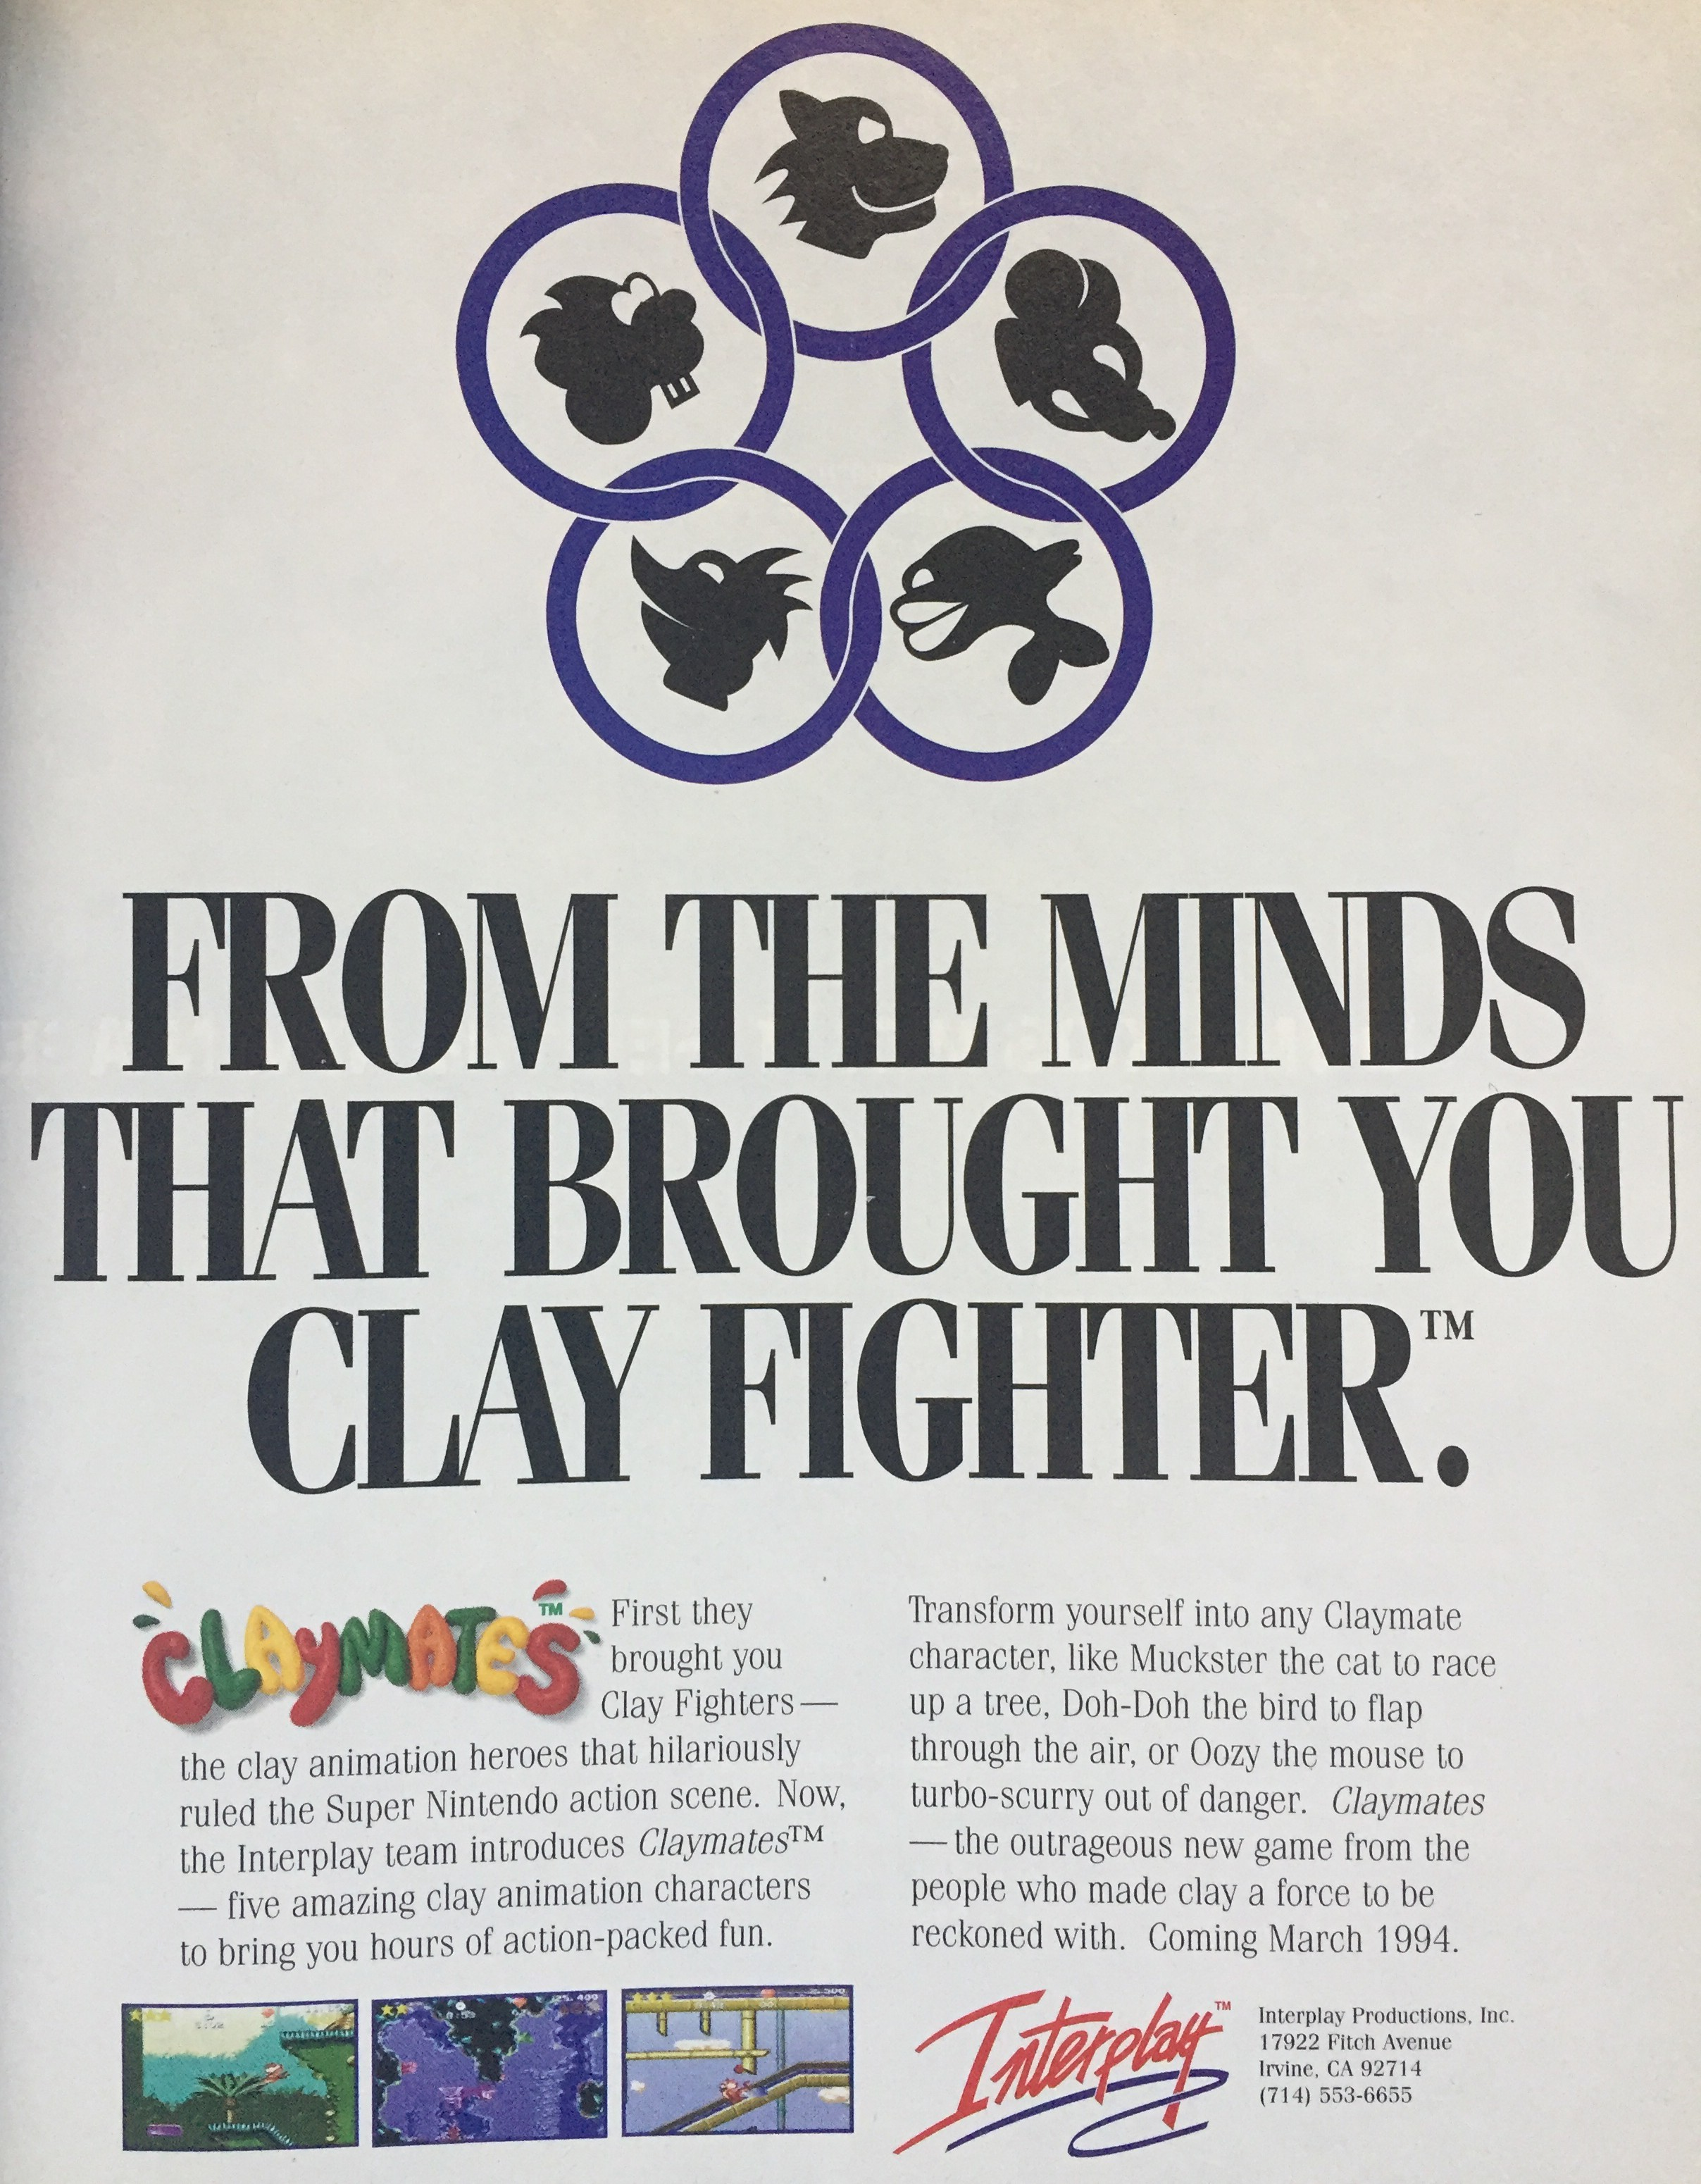 This ad cites March '94...